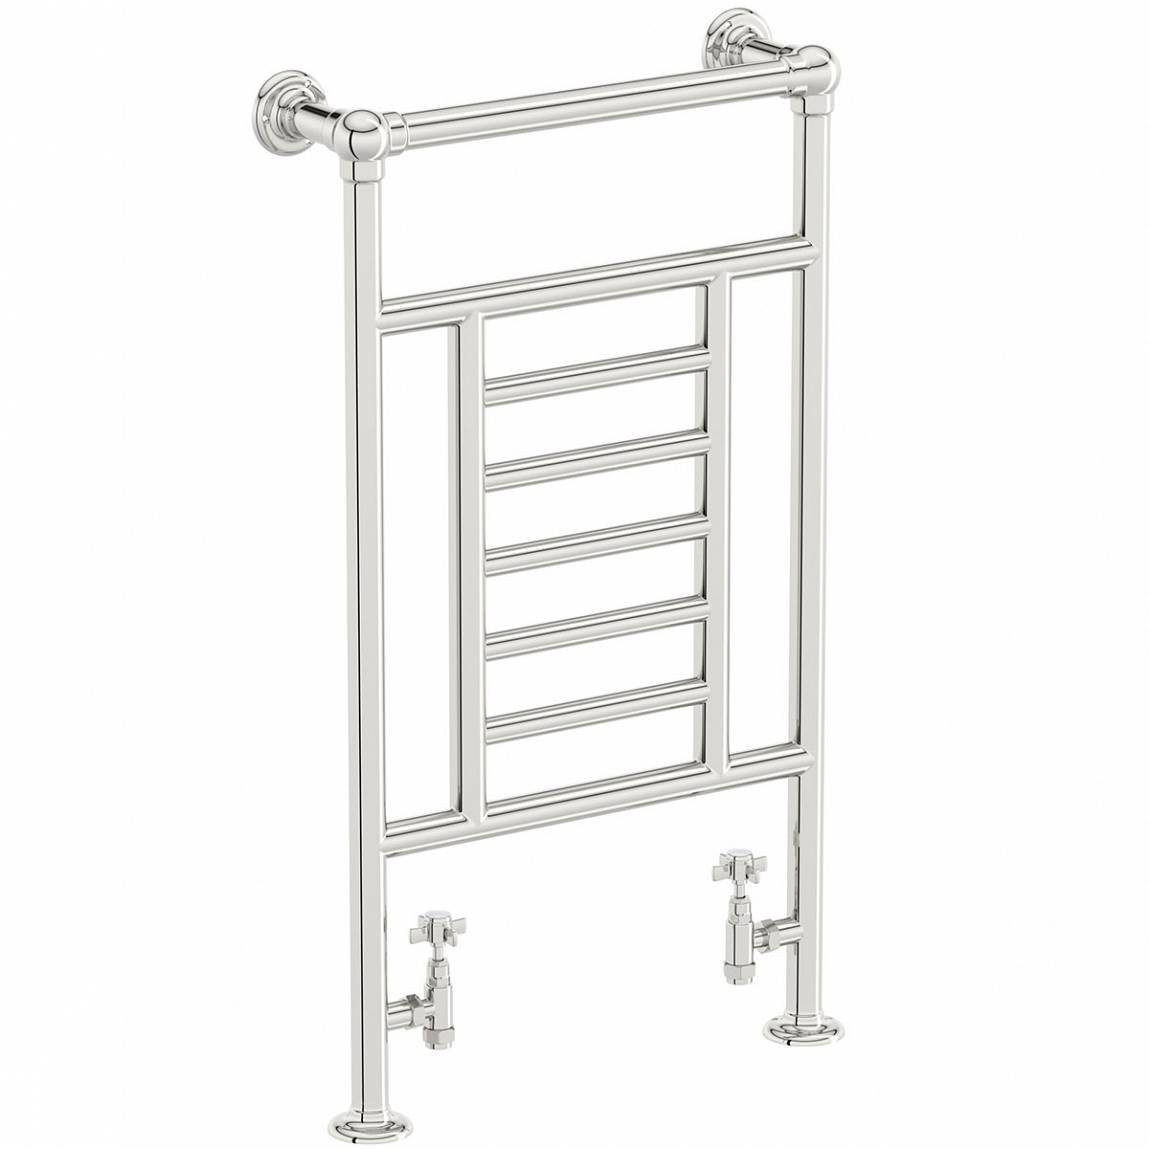 Image of Buckingham Heated Towel Rail PLUS Traditional Valves